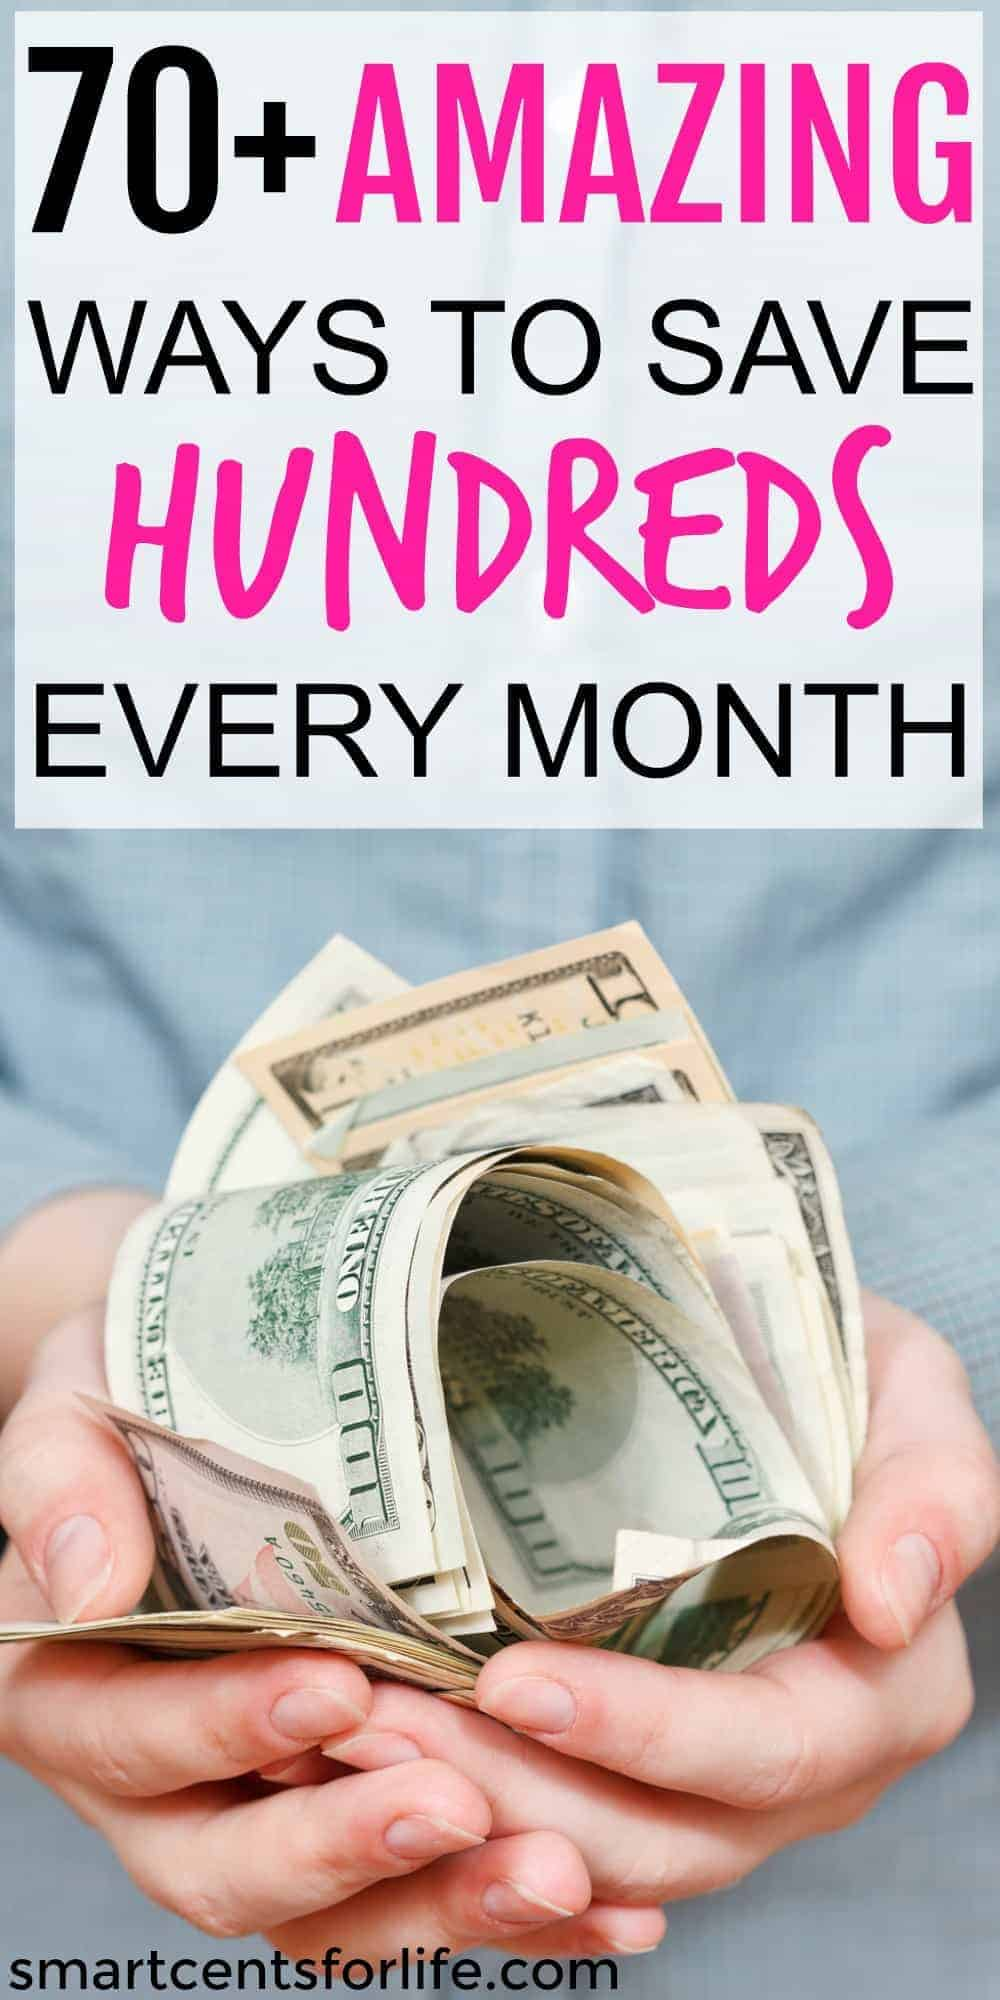 This list contains over 70 money saving tips to help you save hundreds every month. Even if you live paycheck to paycheck learn how to save money on almost everything. You can get the most out of your money even if you live on a low income. Save money each week or month and use it for a downpayment on a house, college education, Christmas presents,  a dream vacation or anything you want! #moneysavingtips #frugallivingtips #savemoney